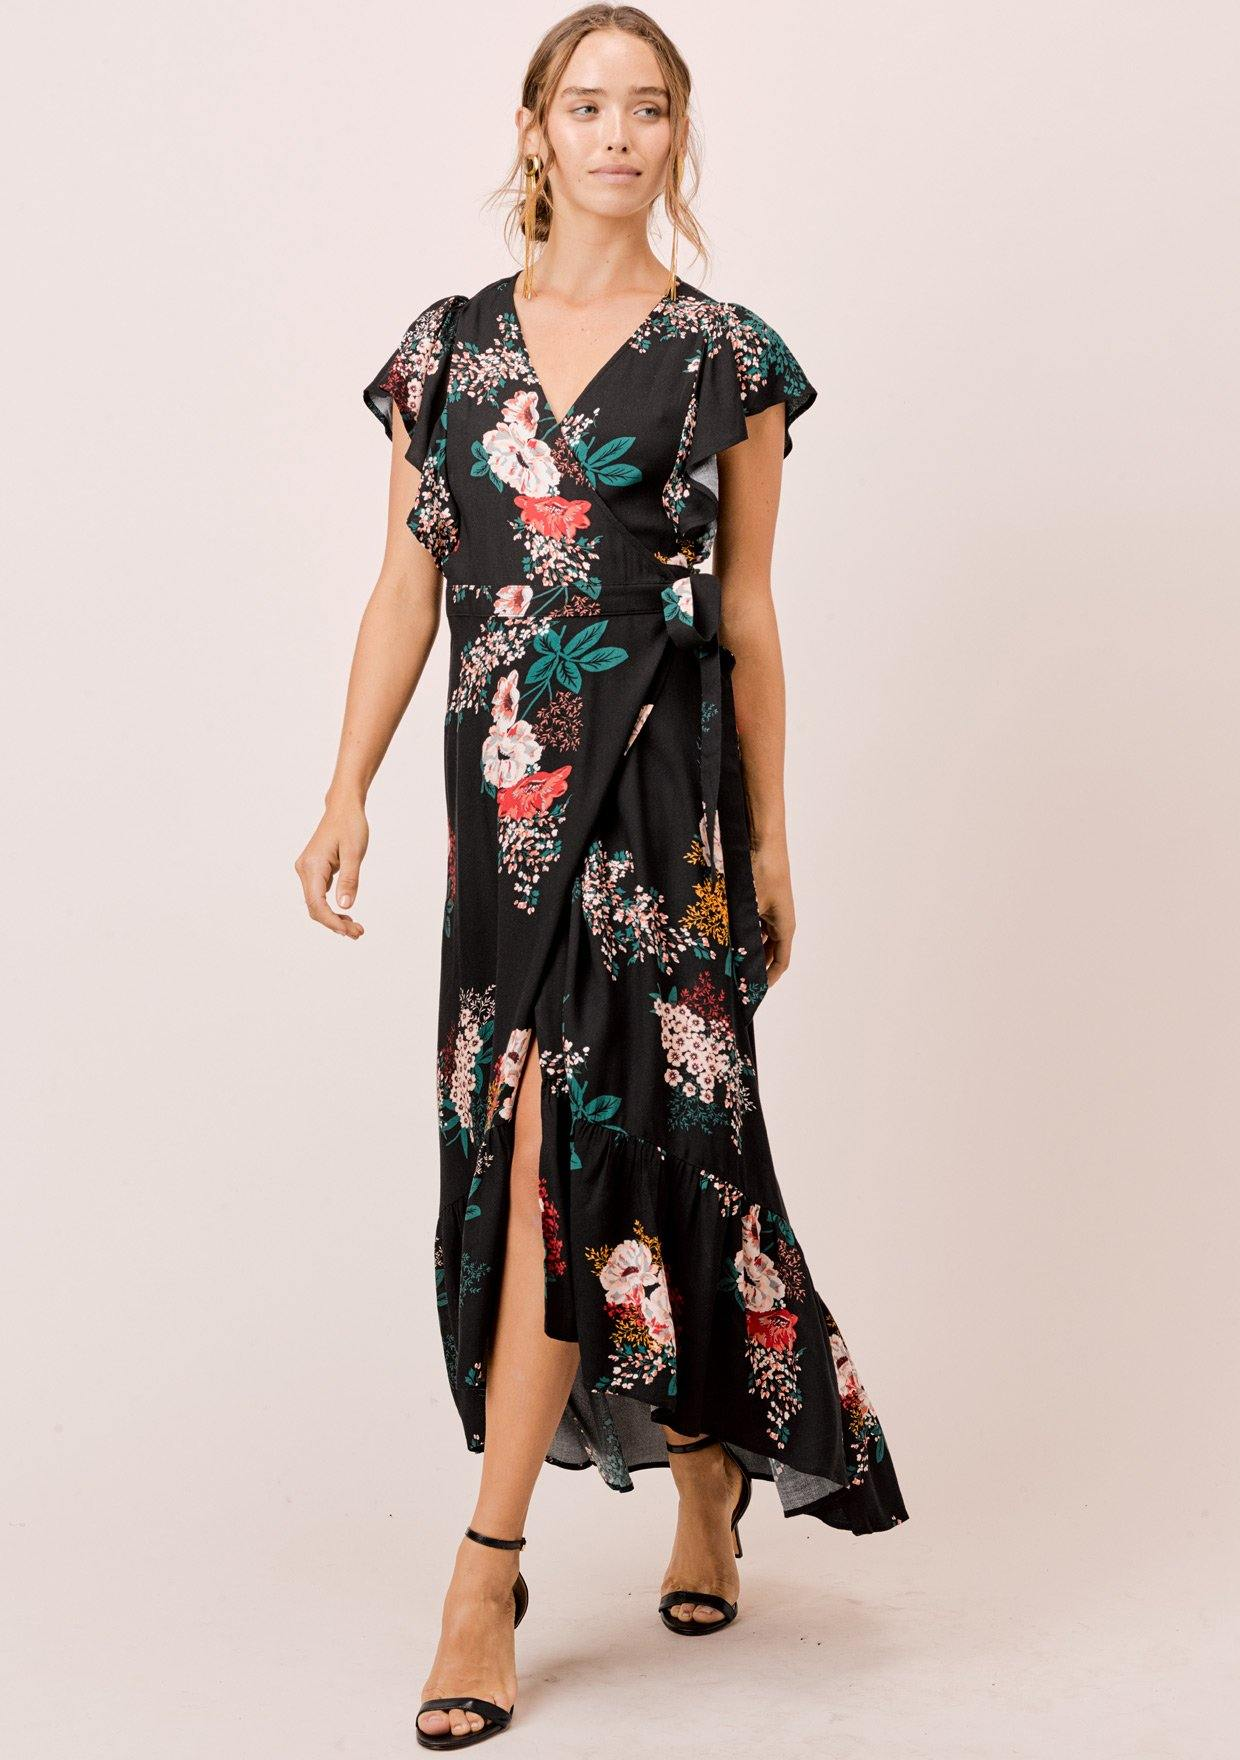 [Color: Black] Lovestitch black floral printed, flutter sleeve, wrap maxi dress.